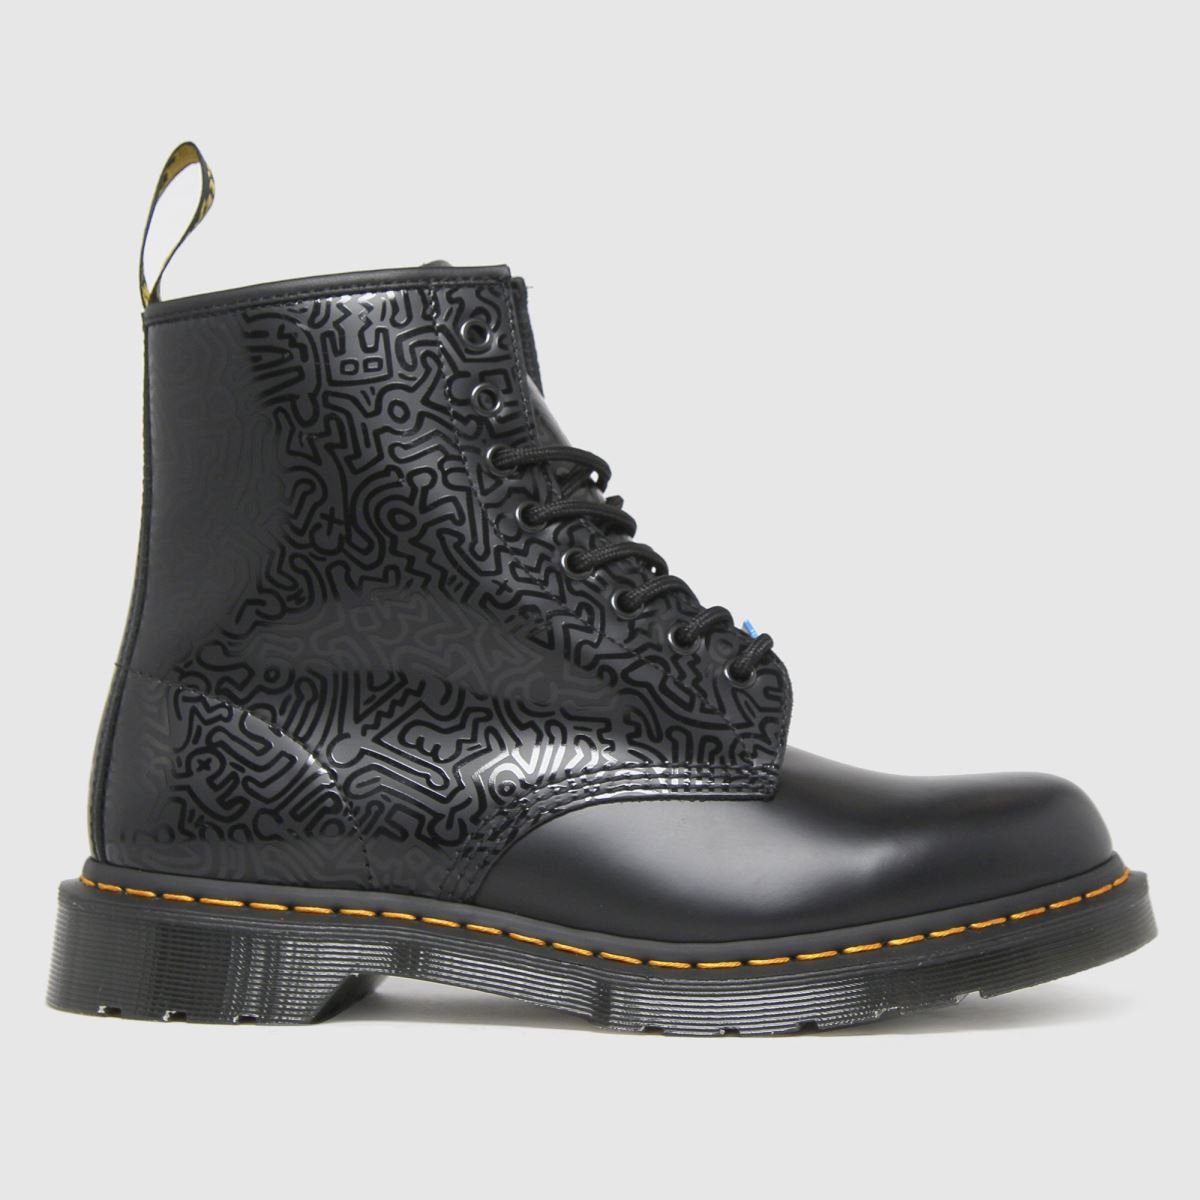 Dr Martens Black 1460 Keith Haring Boots